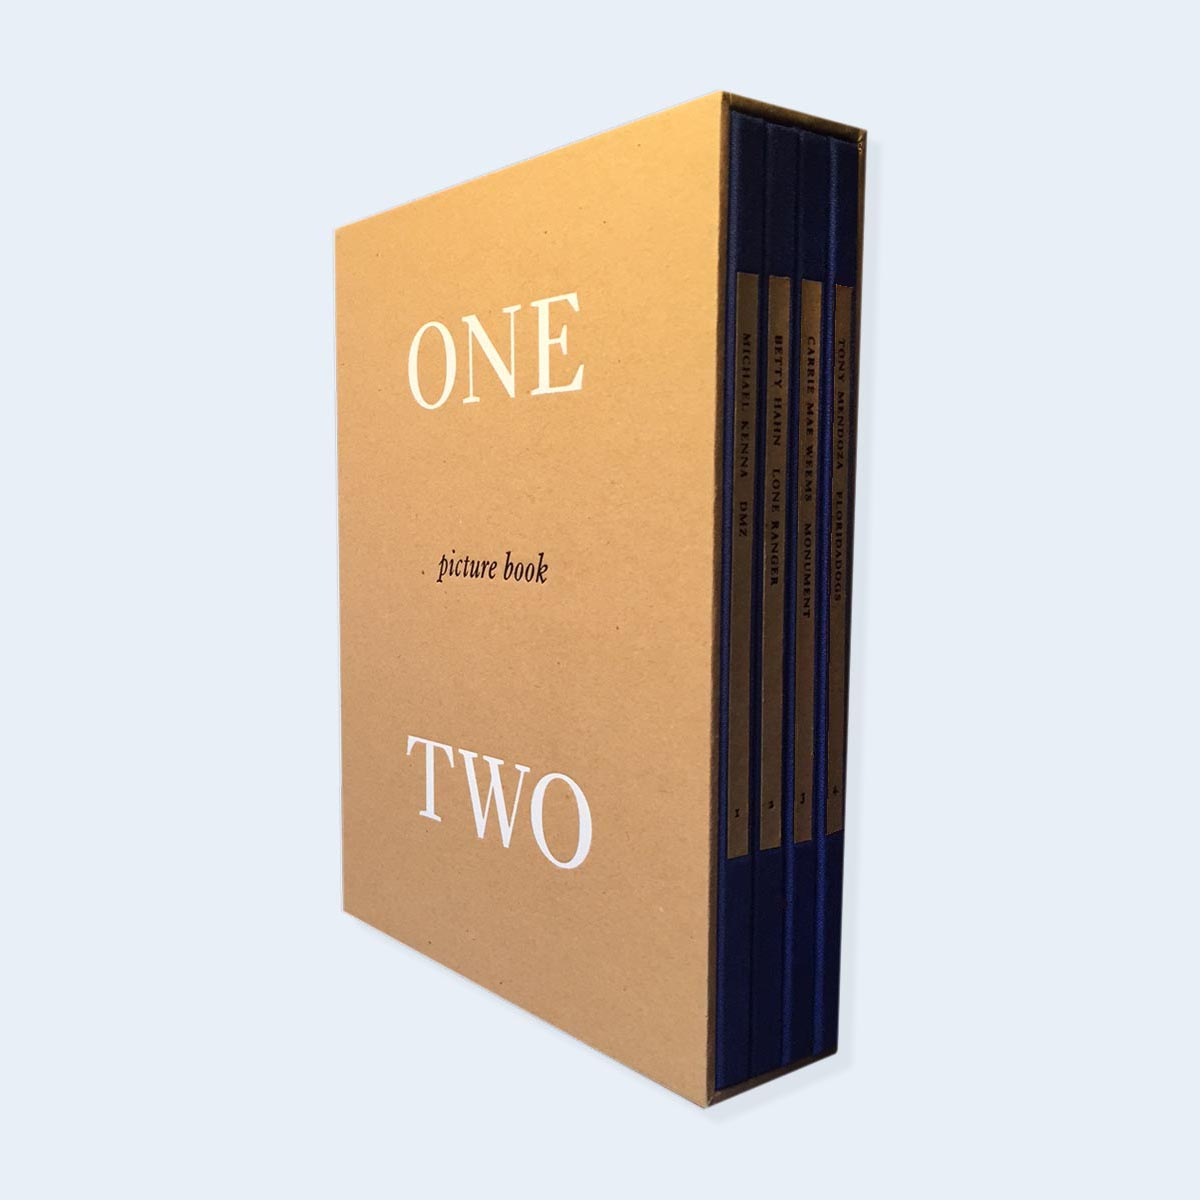 NOW SHIPPING   |  One Picture Book Two | Michael Kenna, Carrie Mae Weems, Betty Hahn, Tony Mendoza |  Order >